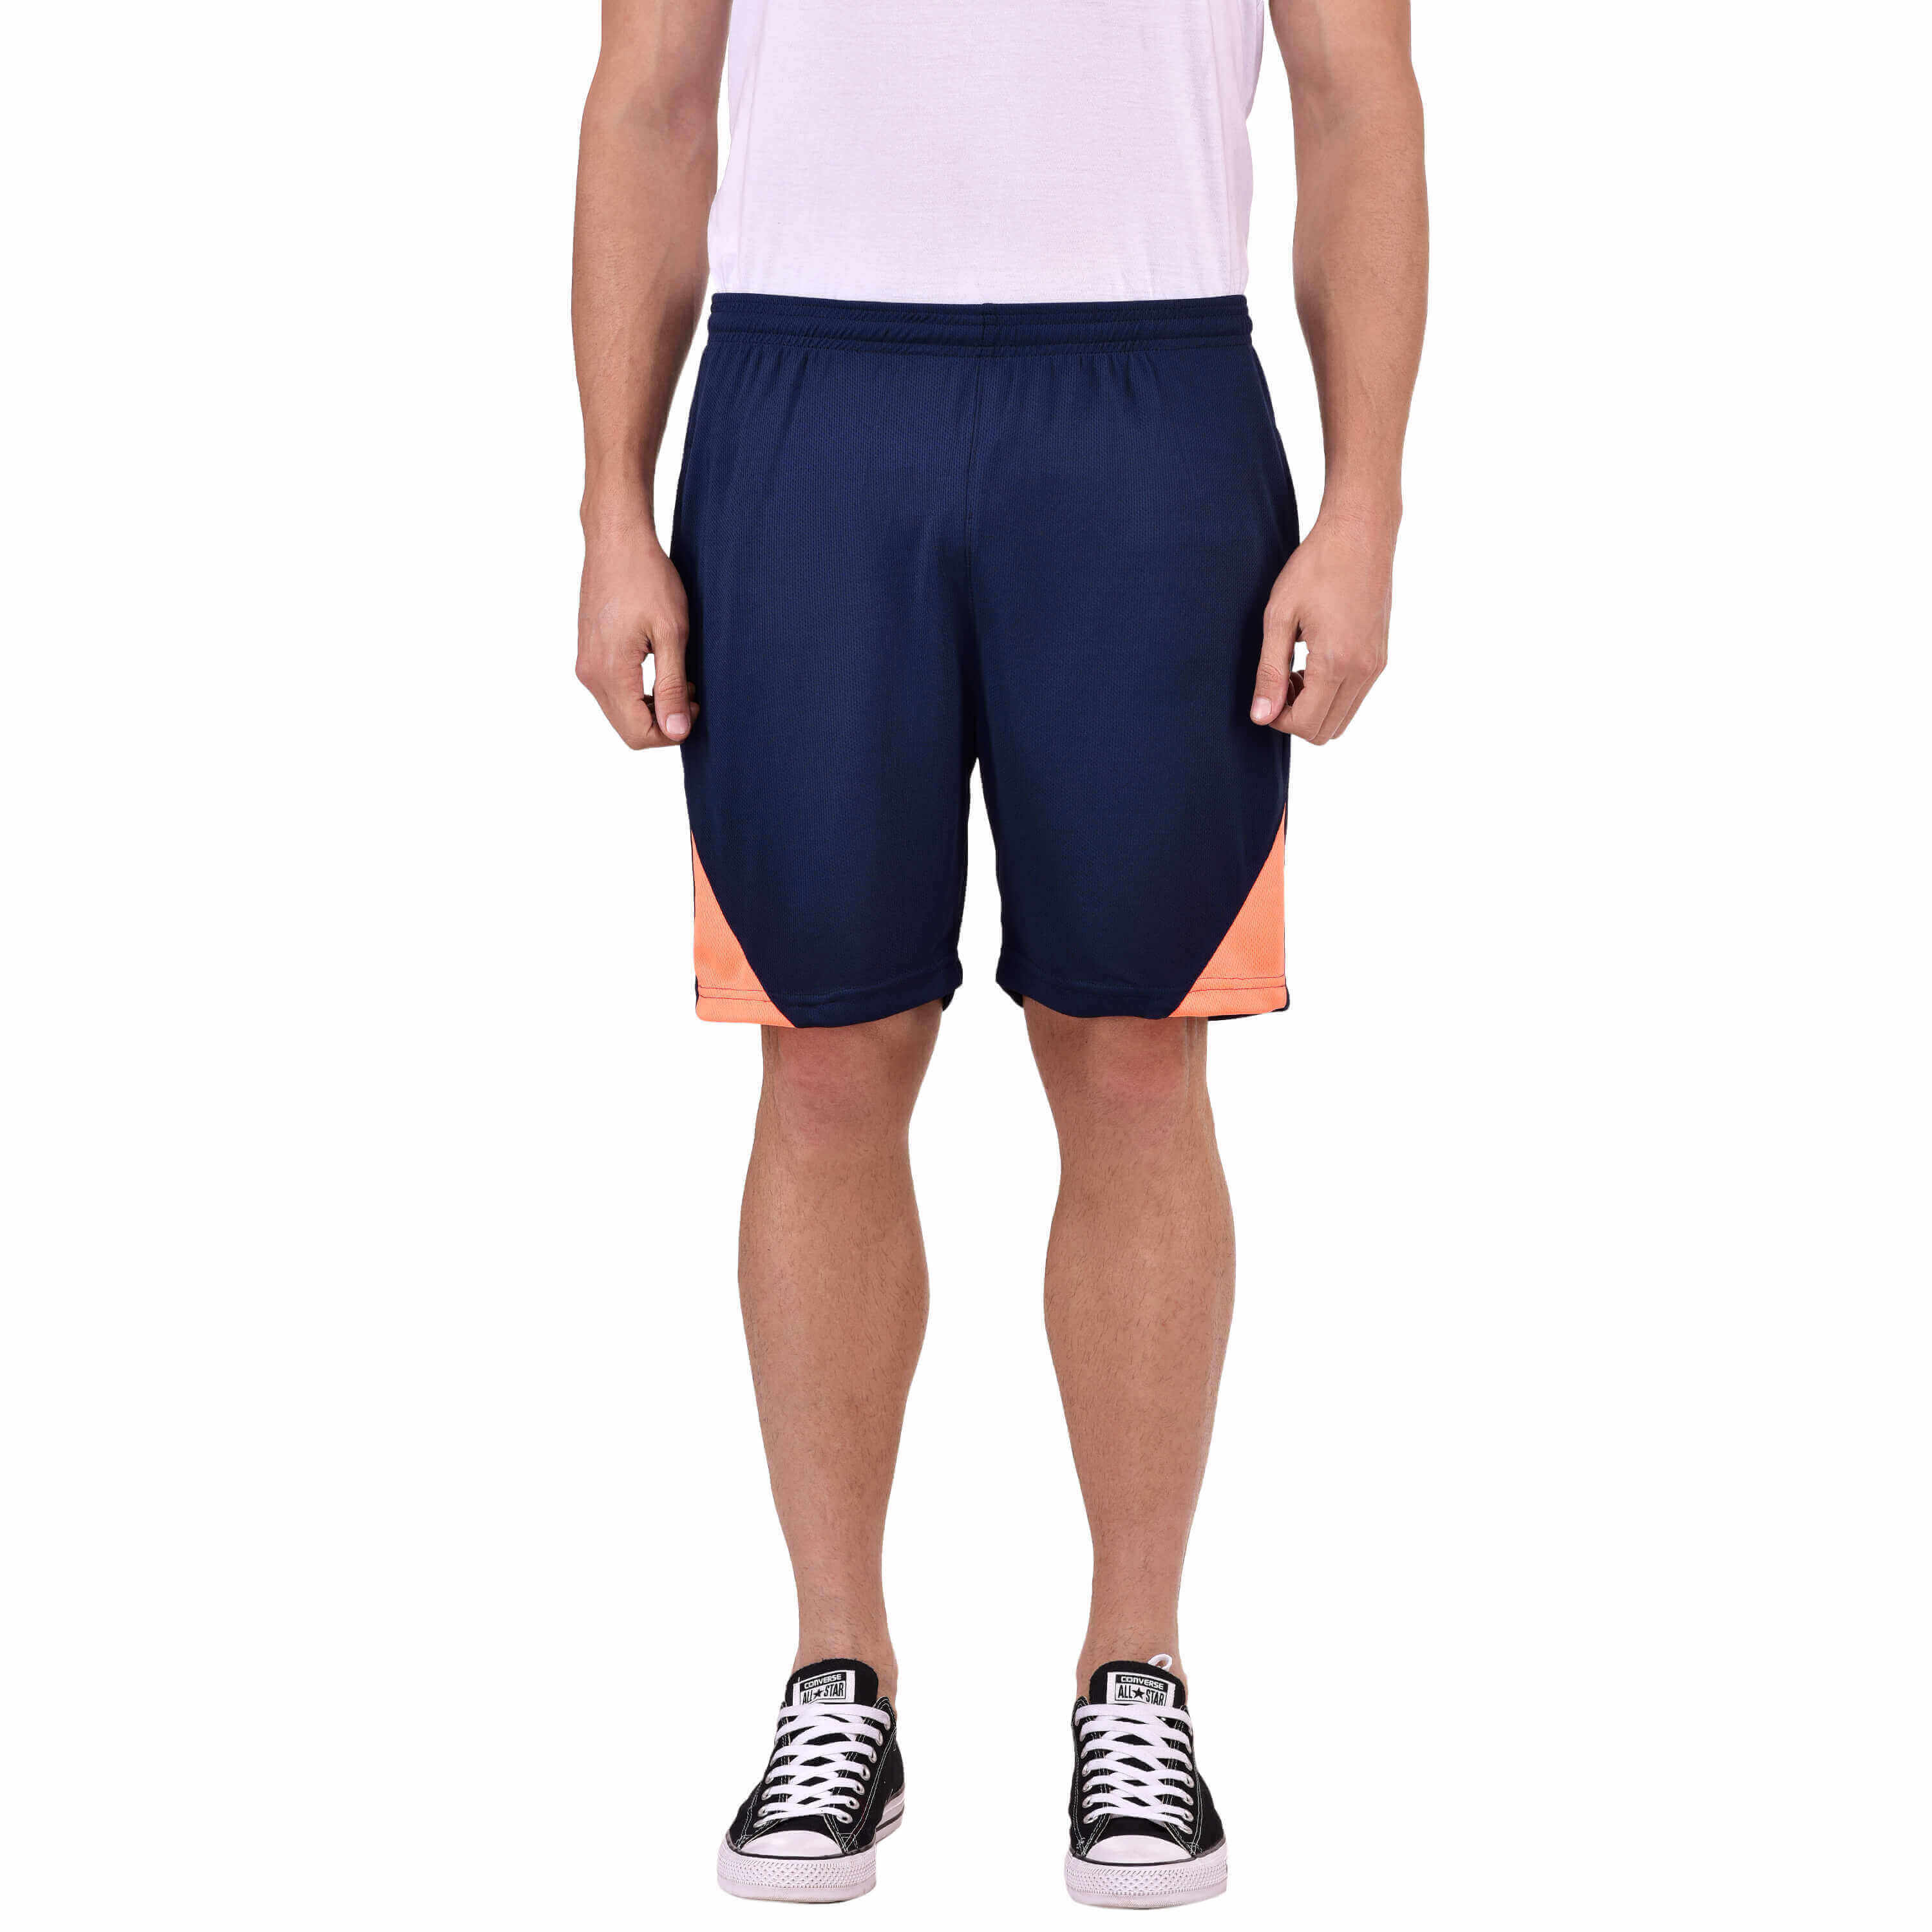 Football Shorts Manufacturers in United-states-of-america